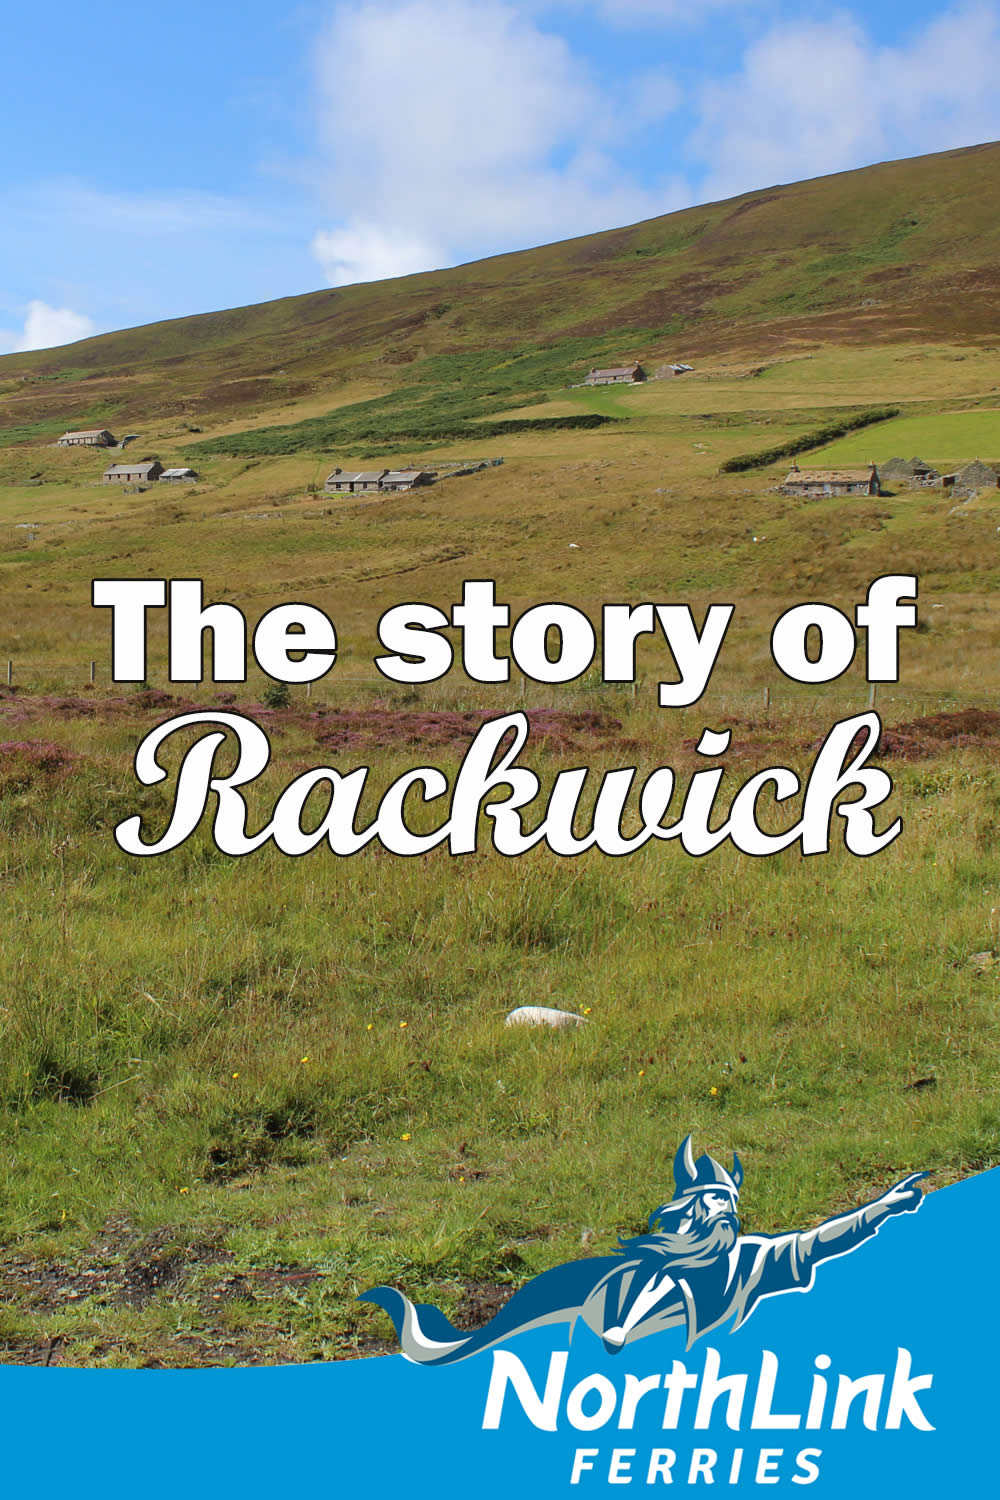 The story of Rackwick